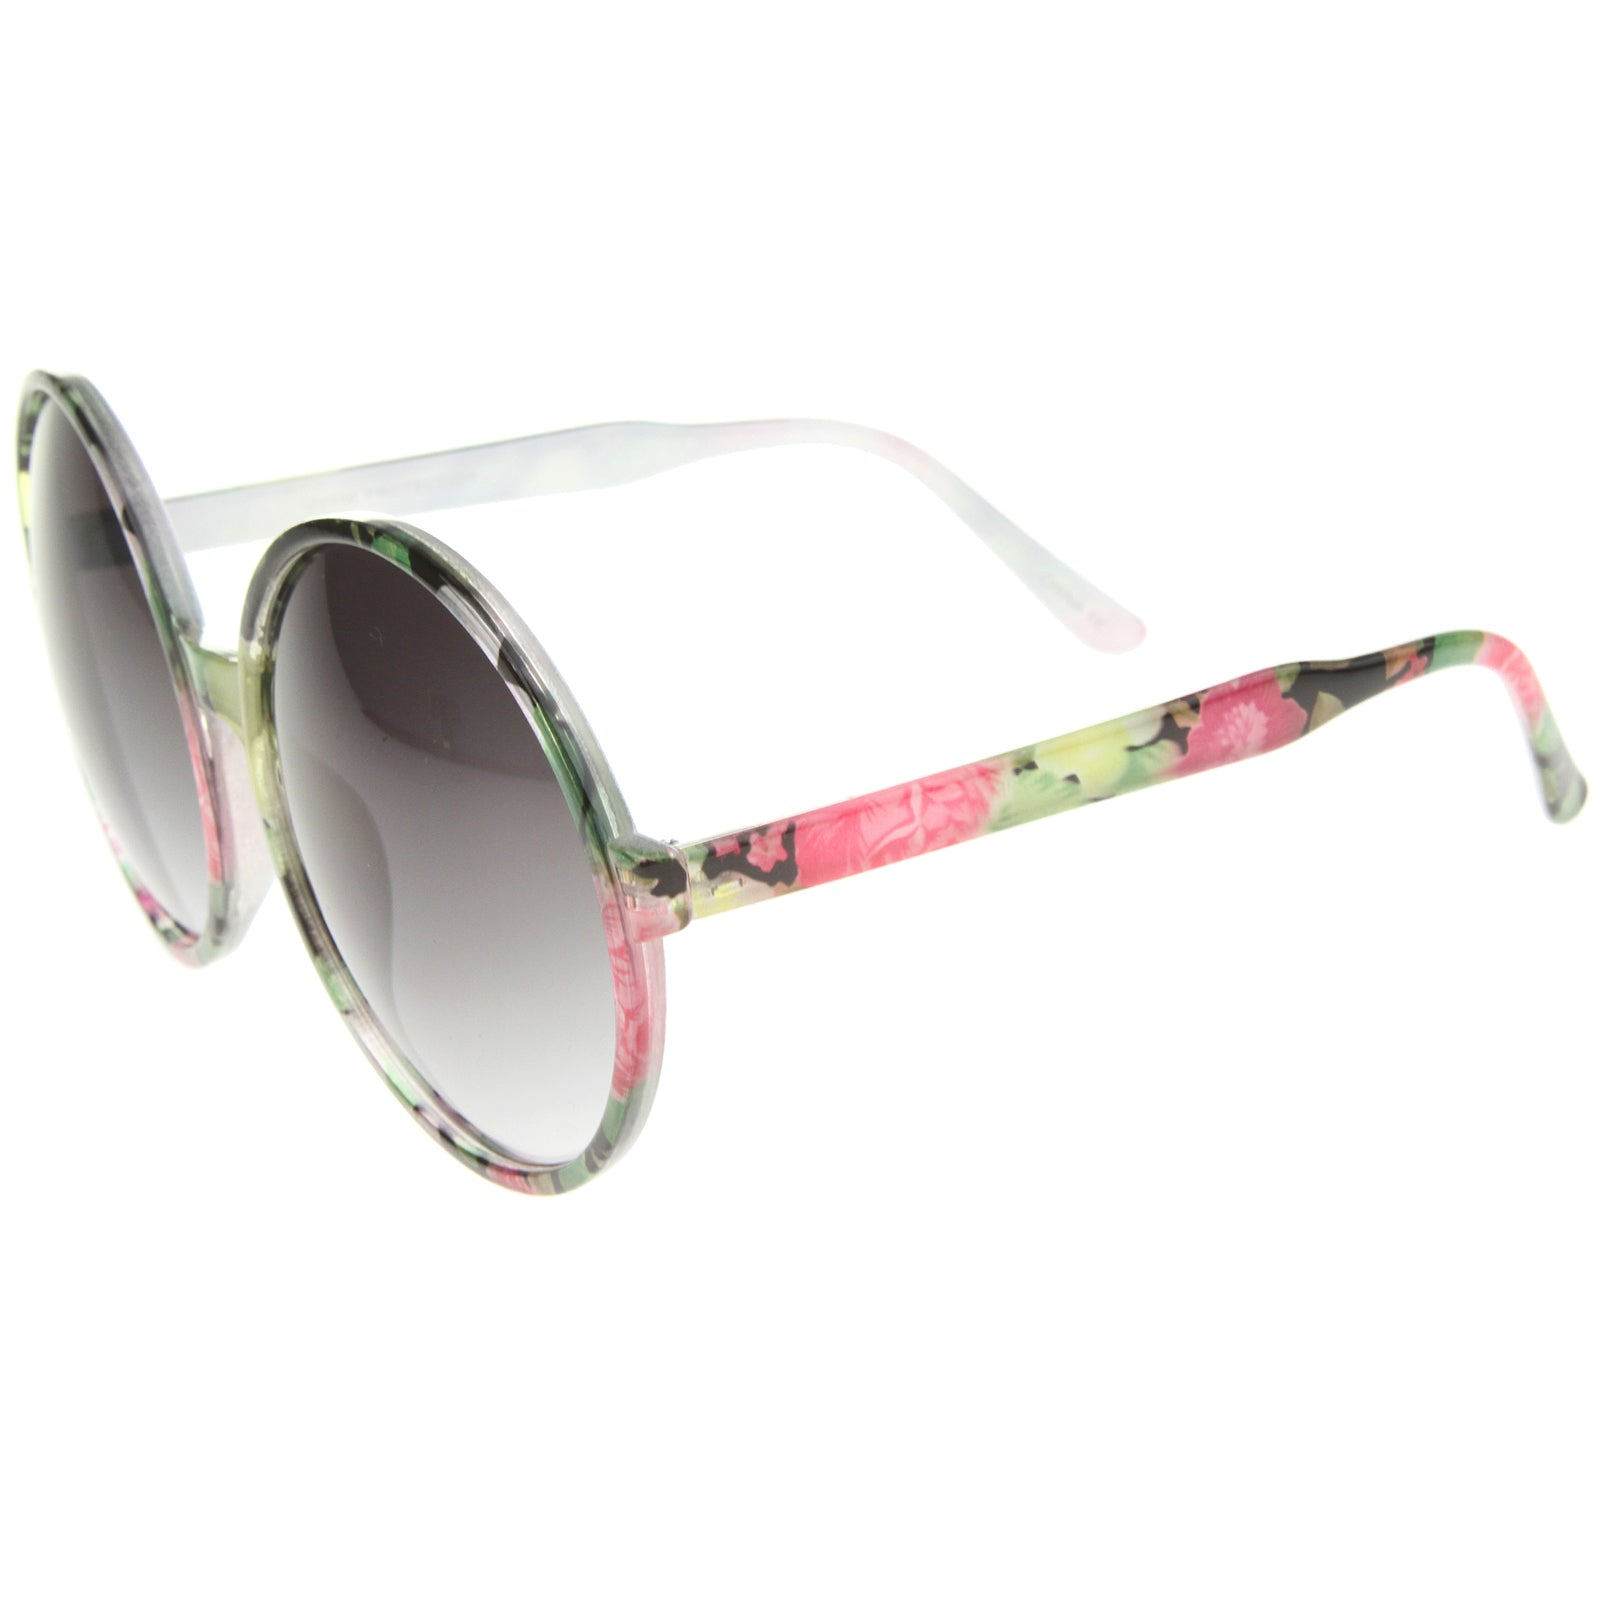 Women's Fashion Floral Print Gradient Lens Oversize Round Sunglasses 66mm - sunglass.la - 7